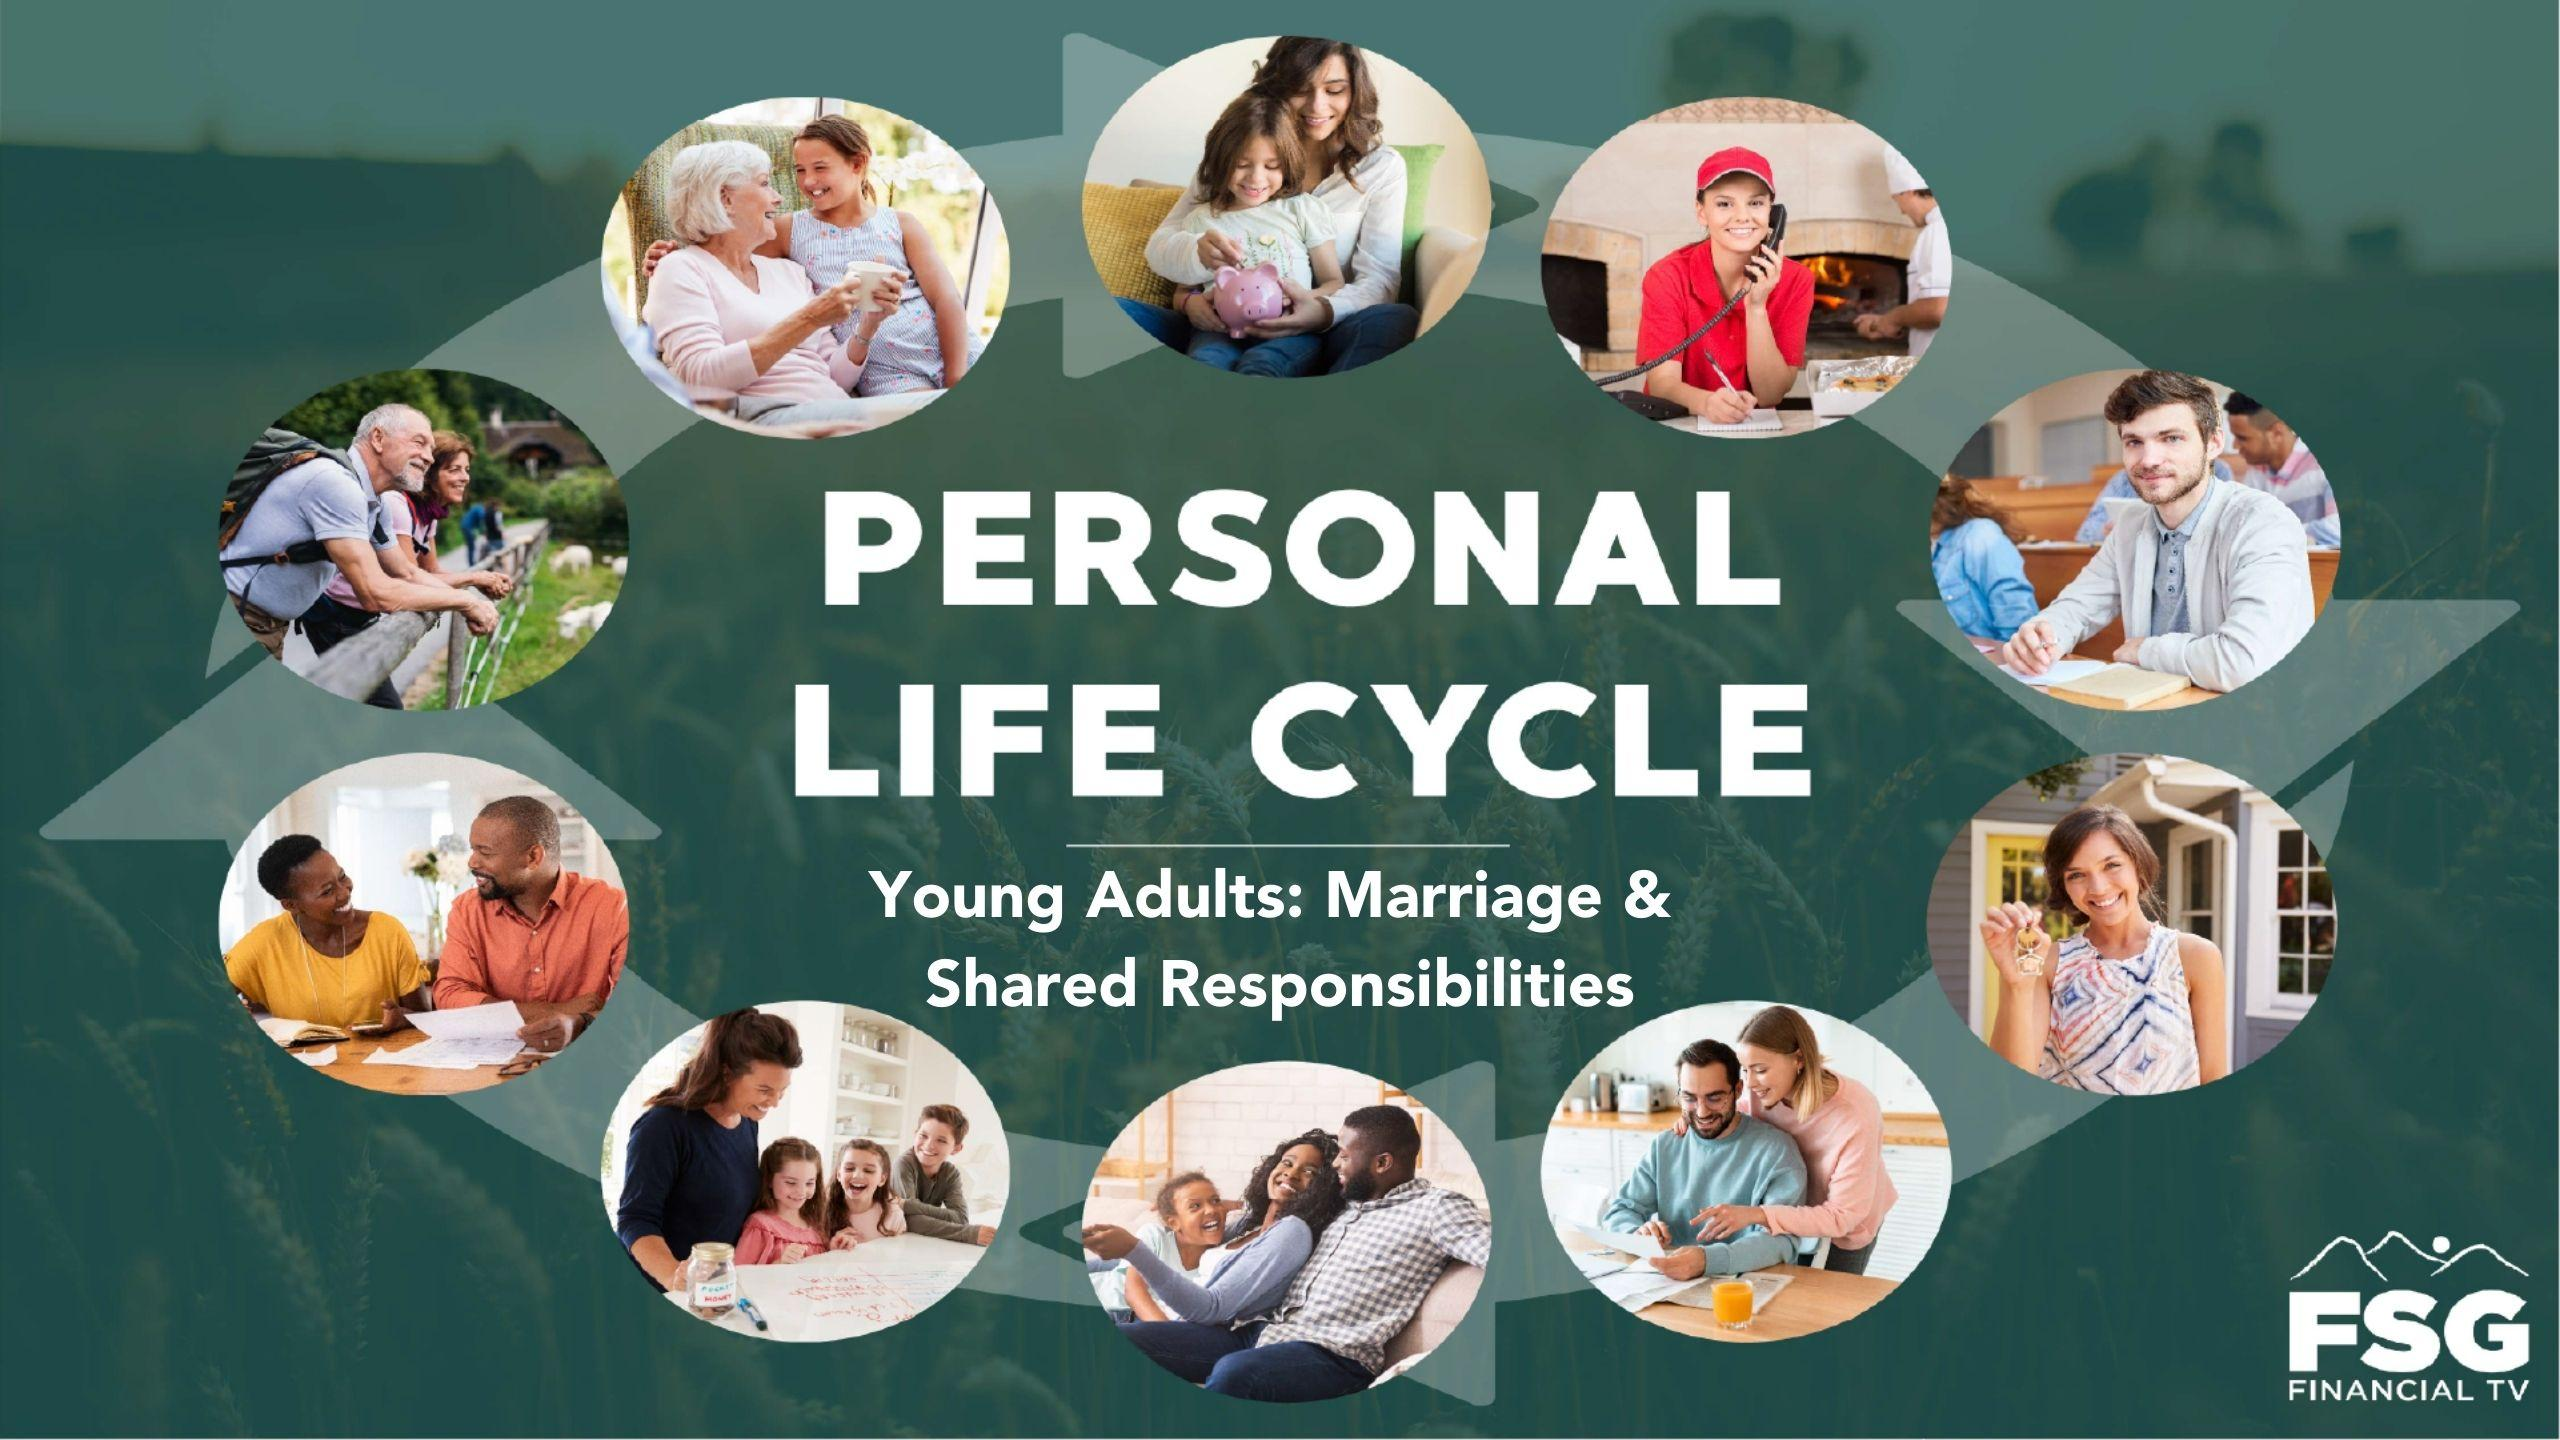 Personal Life Cycle: Young Adults: Marriage & Shared Responsibilities Thumbnail